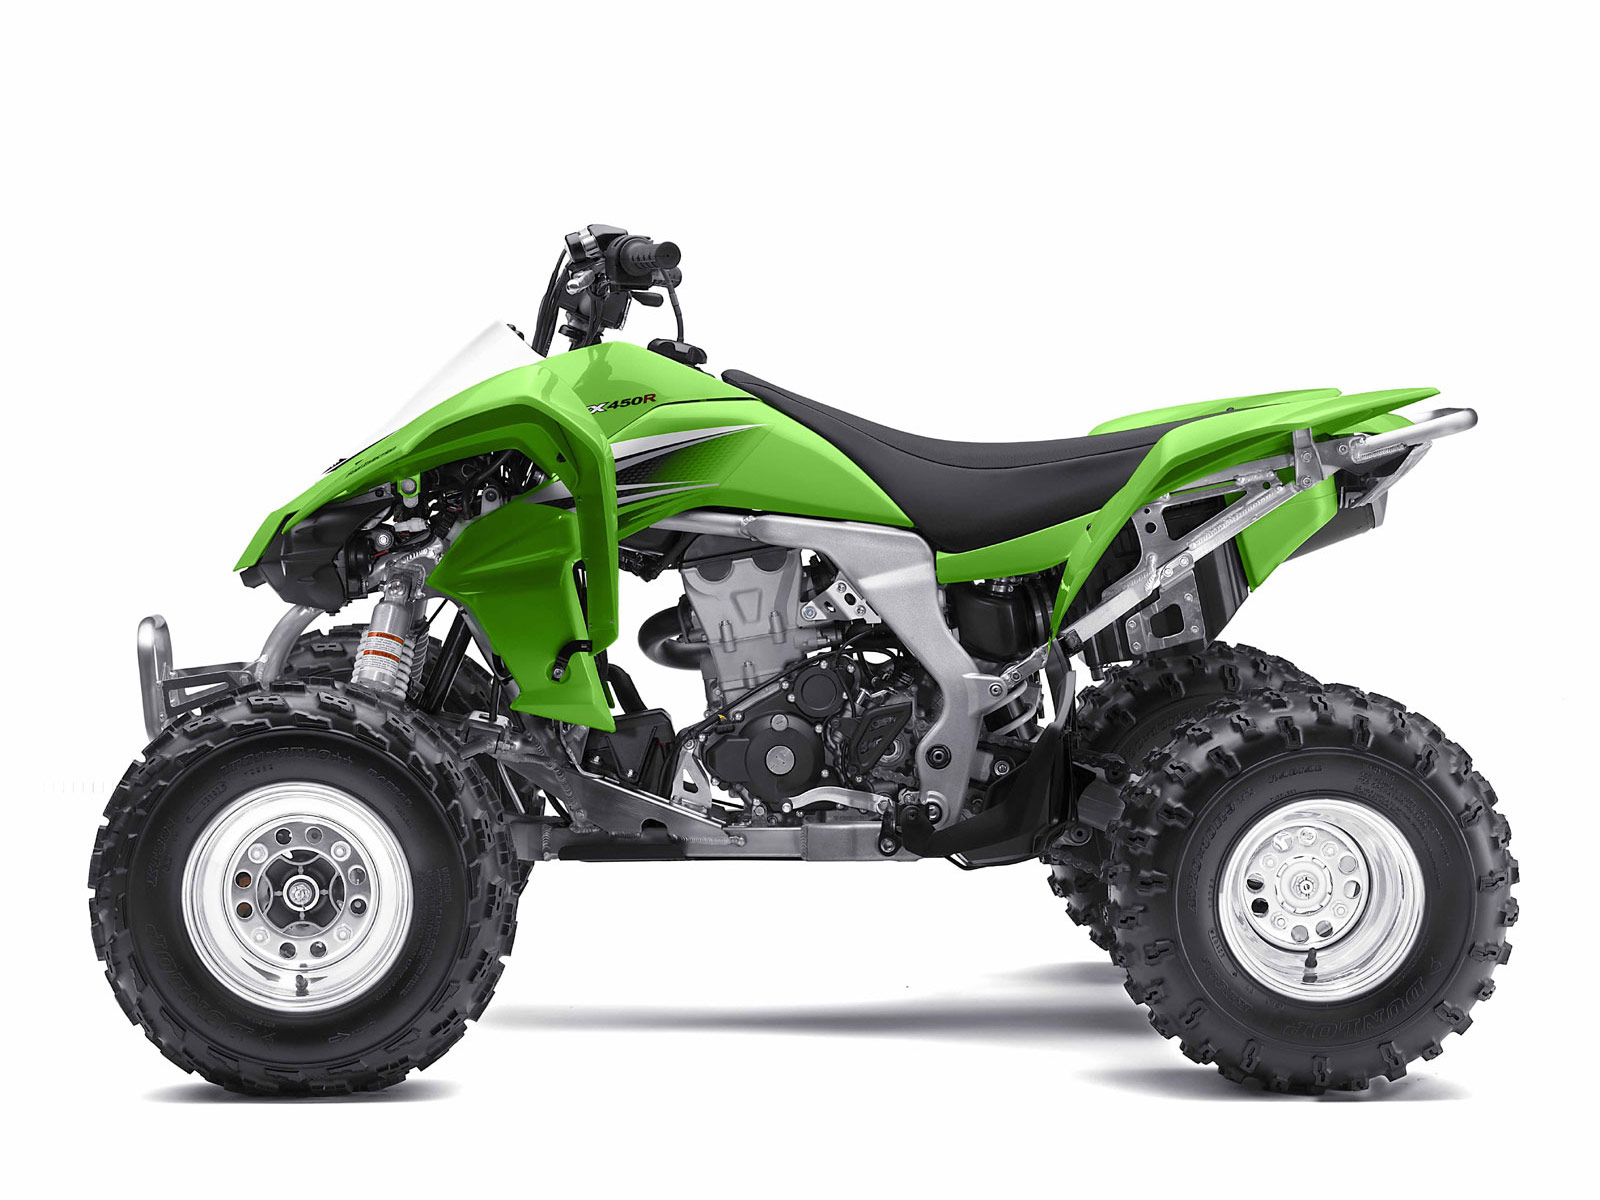 2009 kawasaki kfx450r atv pictures accident lawyers info. Black Bedroom Furniture Sets. Home Design Ideas